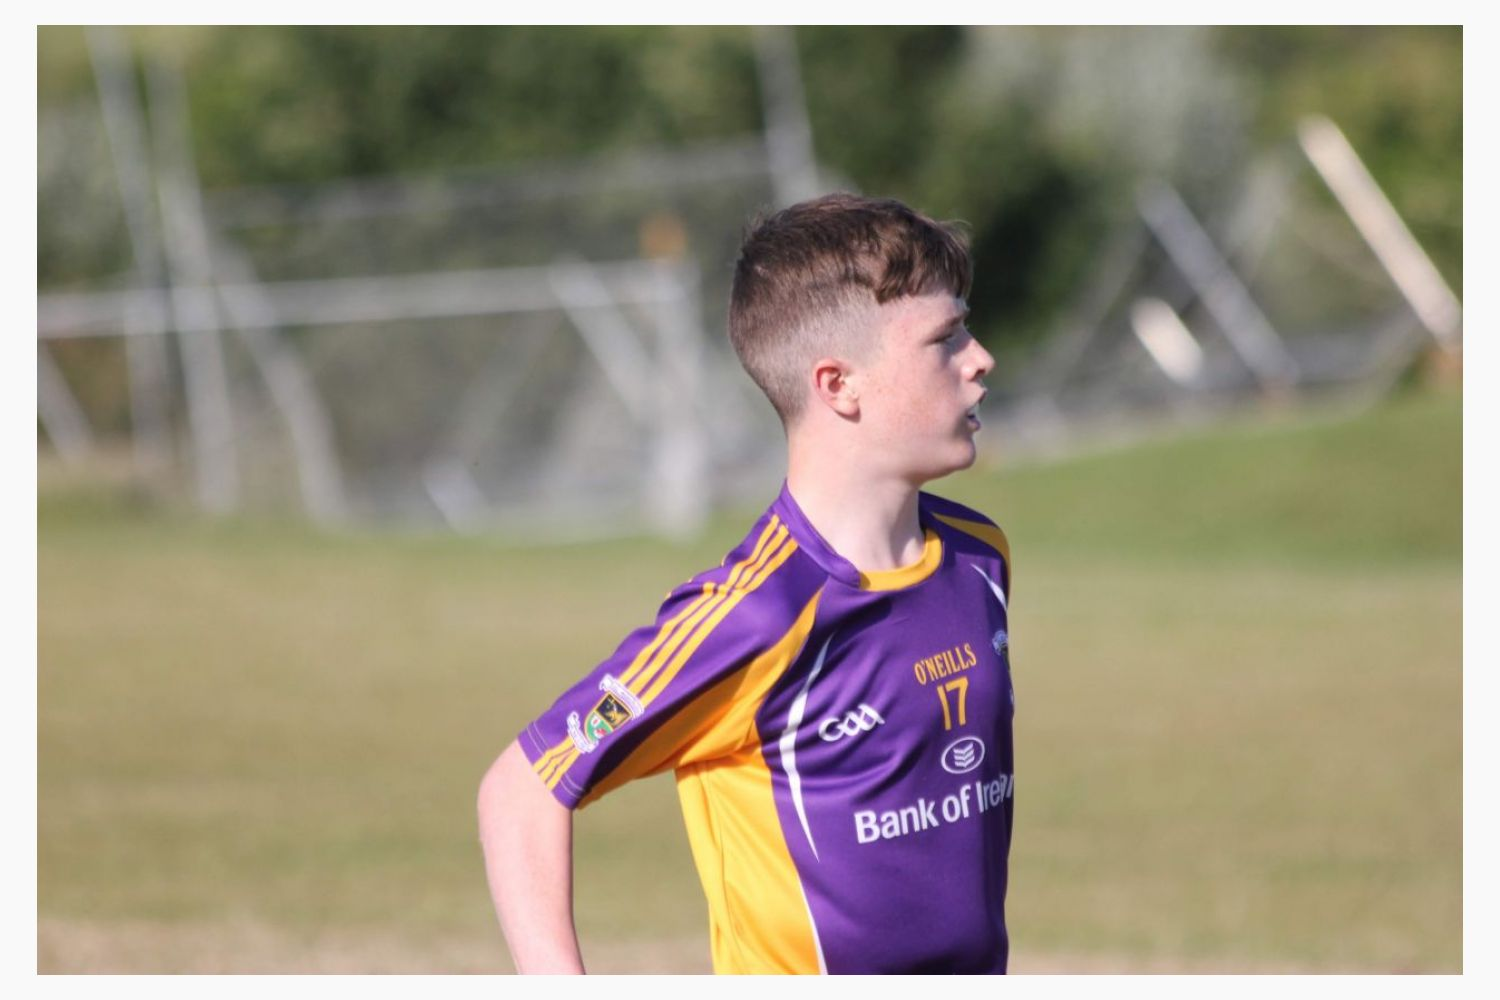 Photo's from Day 1 of the National All Ireland Division 1 Feile Competition